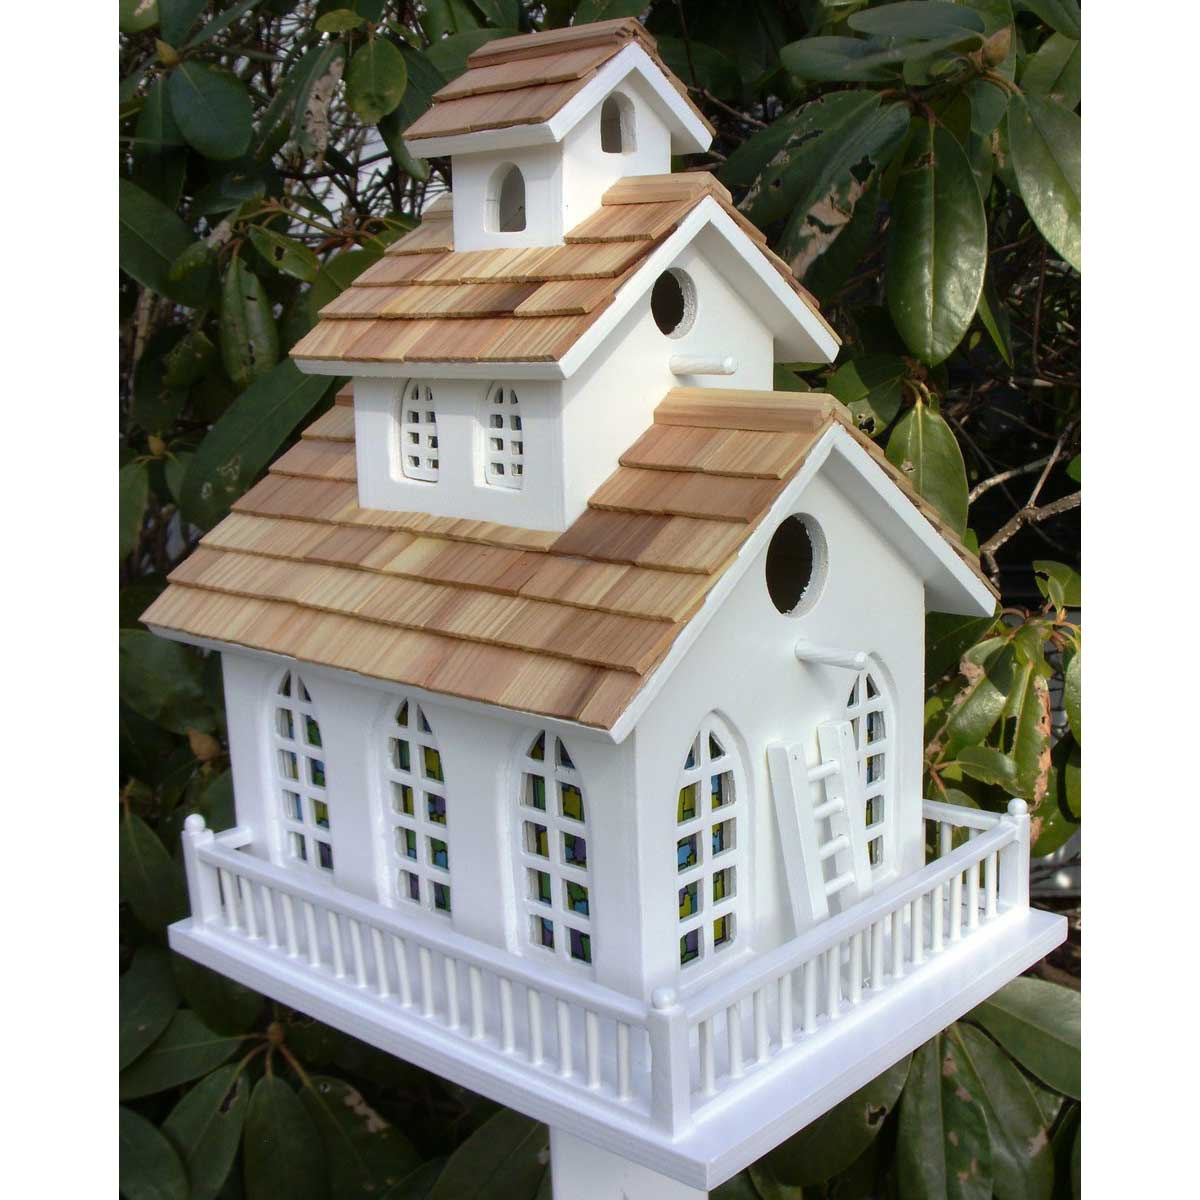 Outdoor Battery Operated String Lights picture on Chapel_Bell_Bird_House_Decorative_Birdhouses  15157  318 with Outdoor Battery Operated String Lights, Outdoor Lighting ideas a666d75ef02e99d1cb9f82ac76a82cba